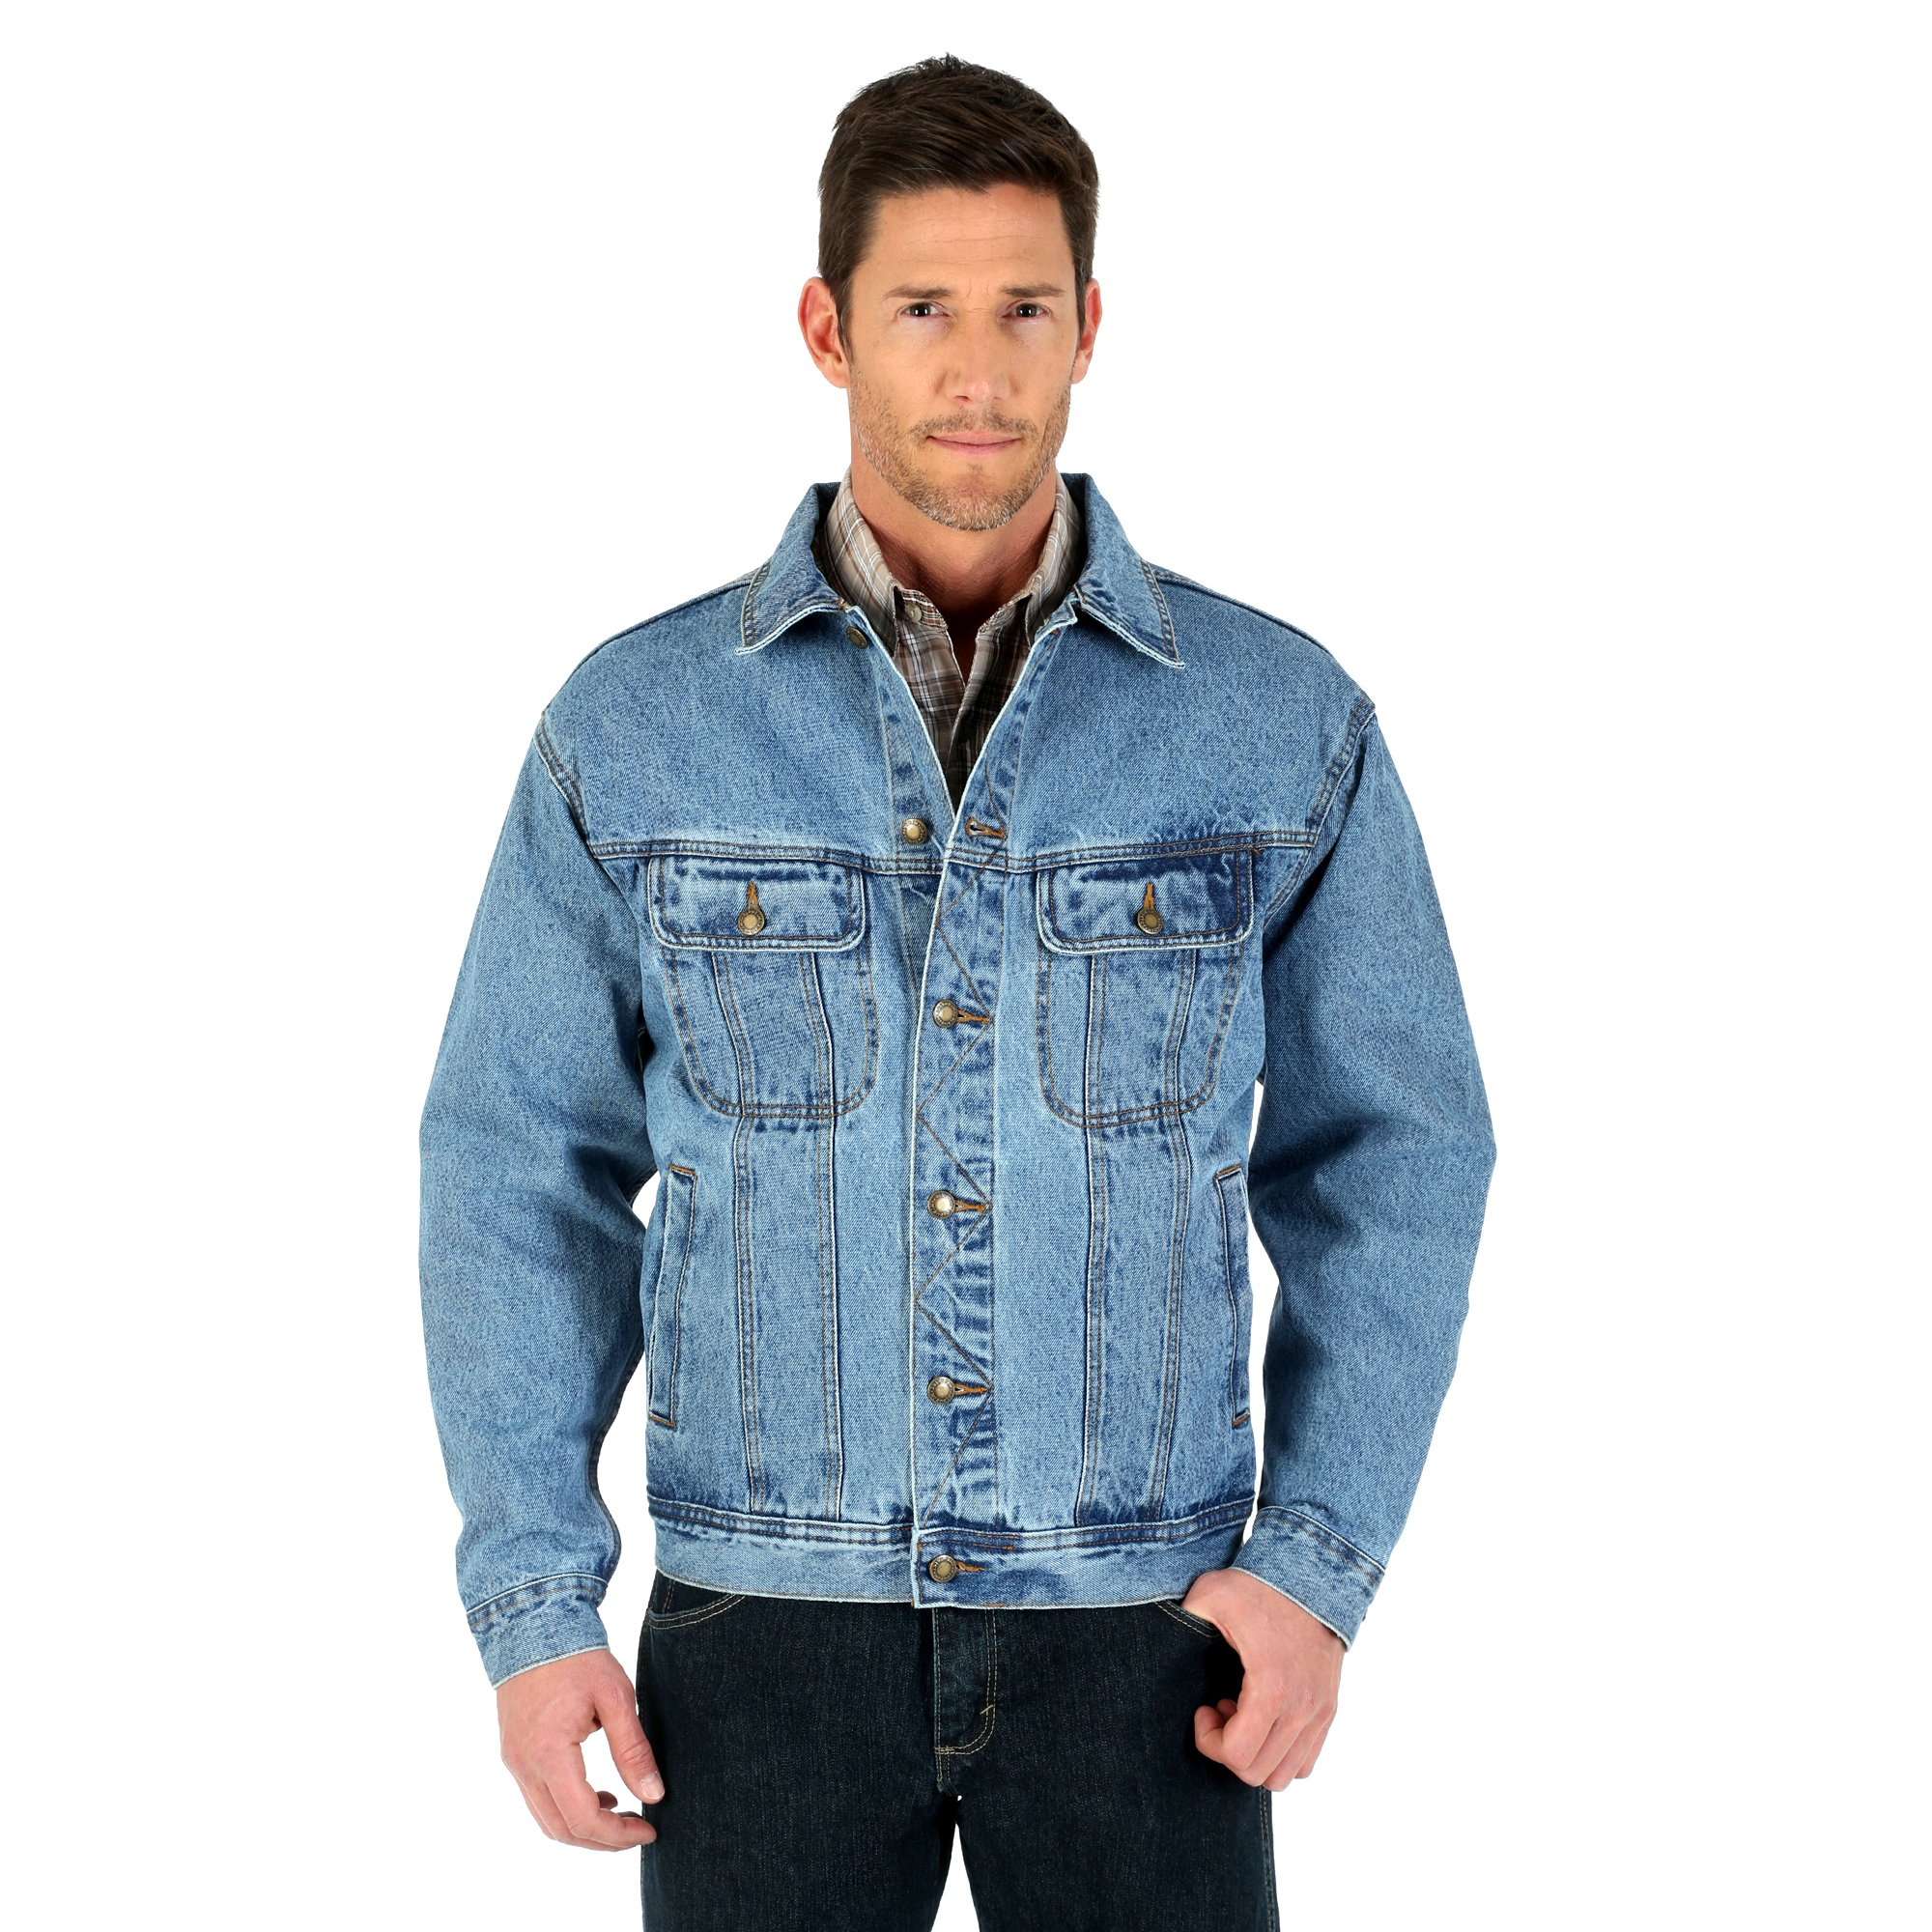 Wrangler Men's Rugged Wear Denim Jacket by Wrangler